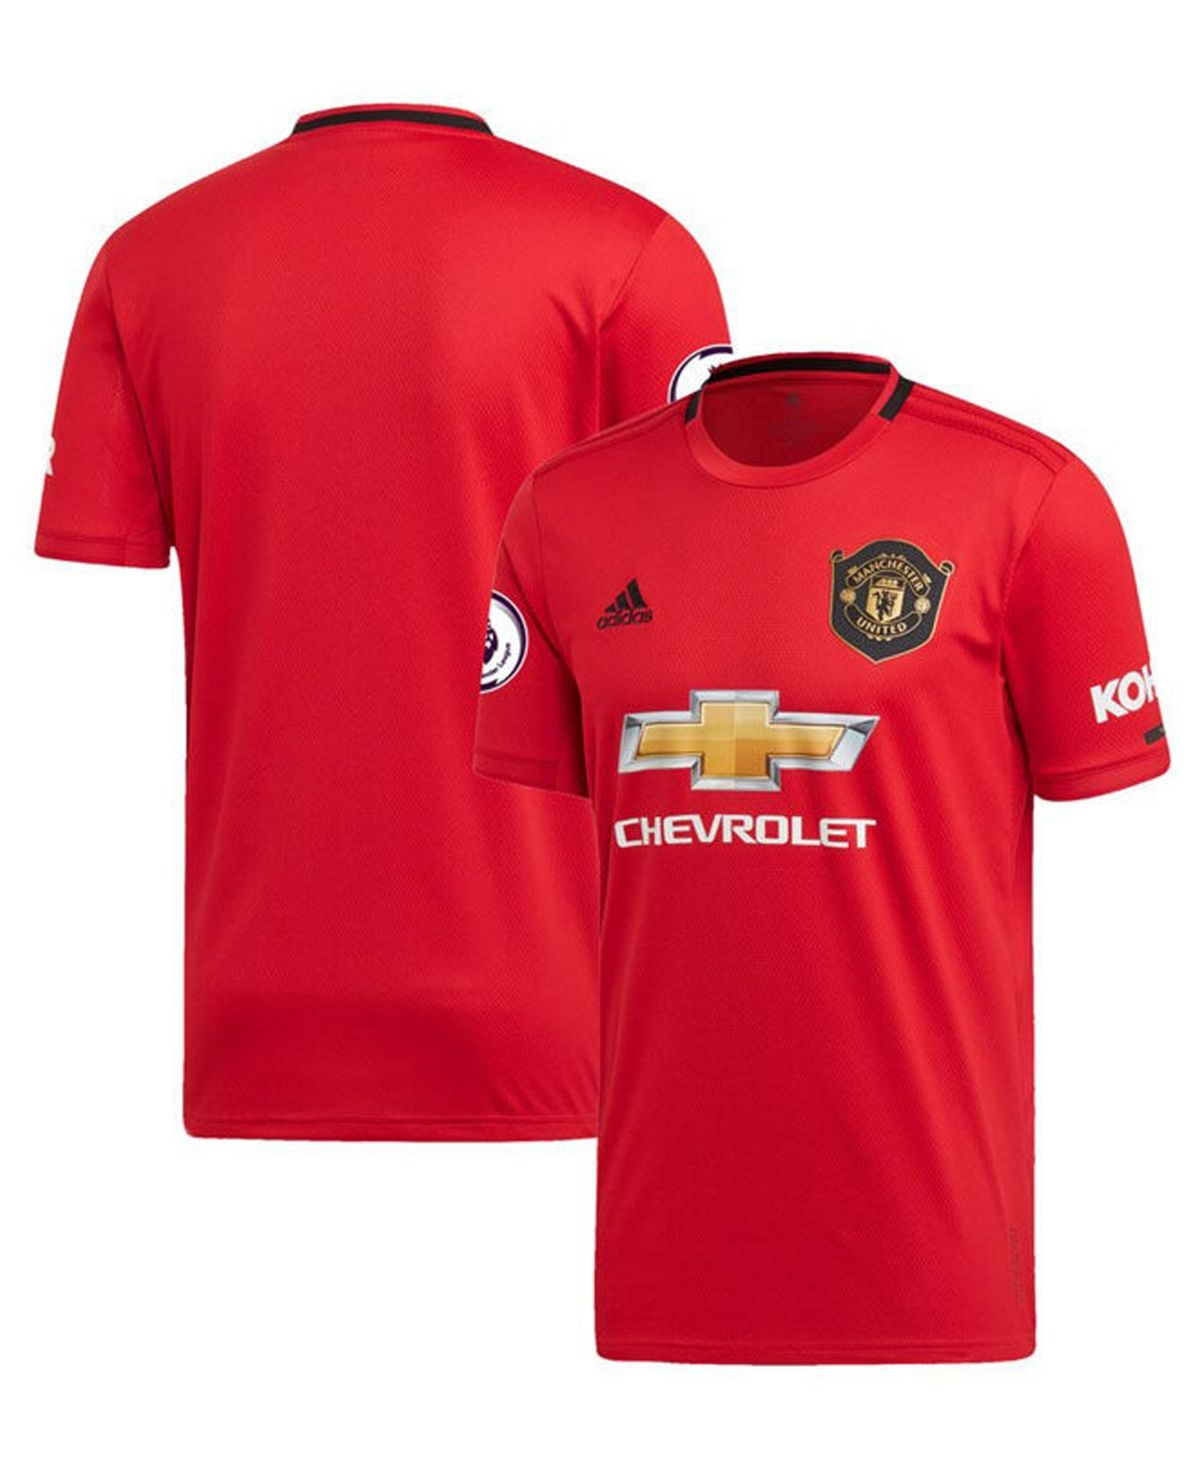 Adidas Men S Manchester United Club Team Home Stadium Jersey Red